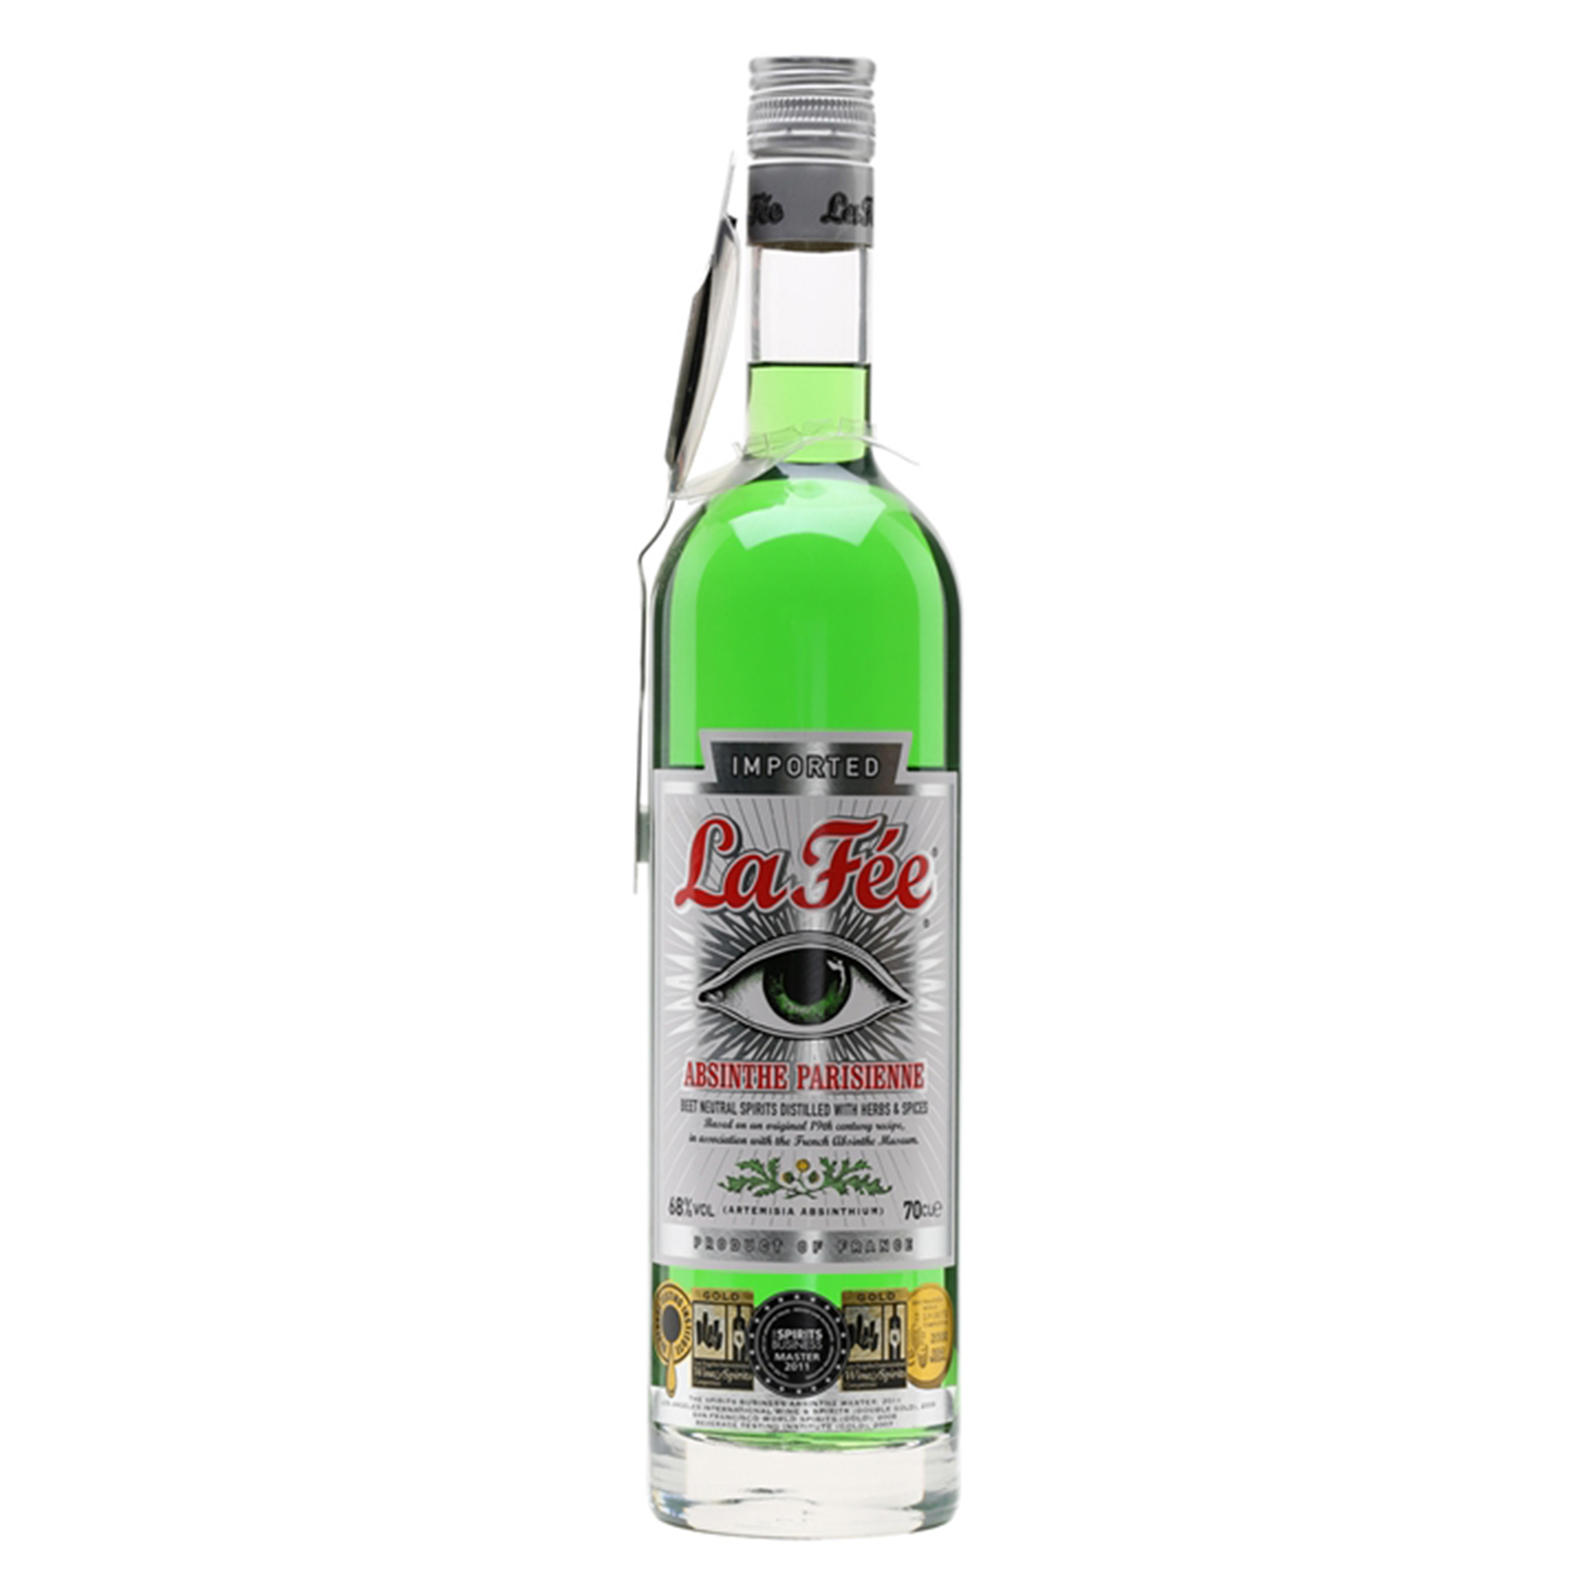 La Fee Parisienne Absinthe - Assenzio - 70cl - La Fee